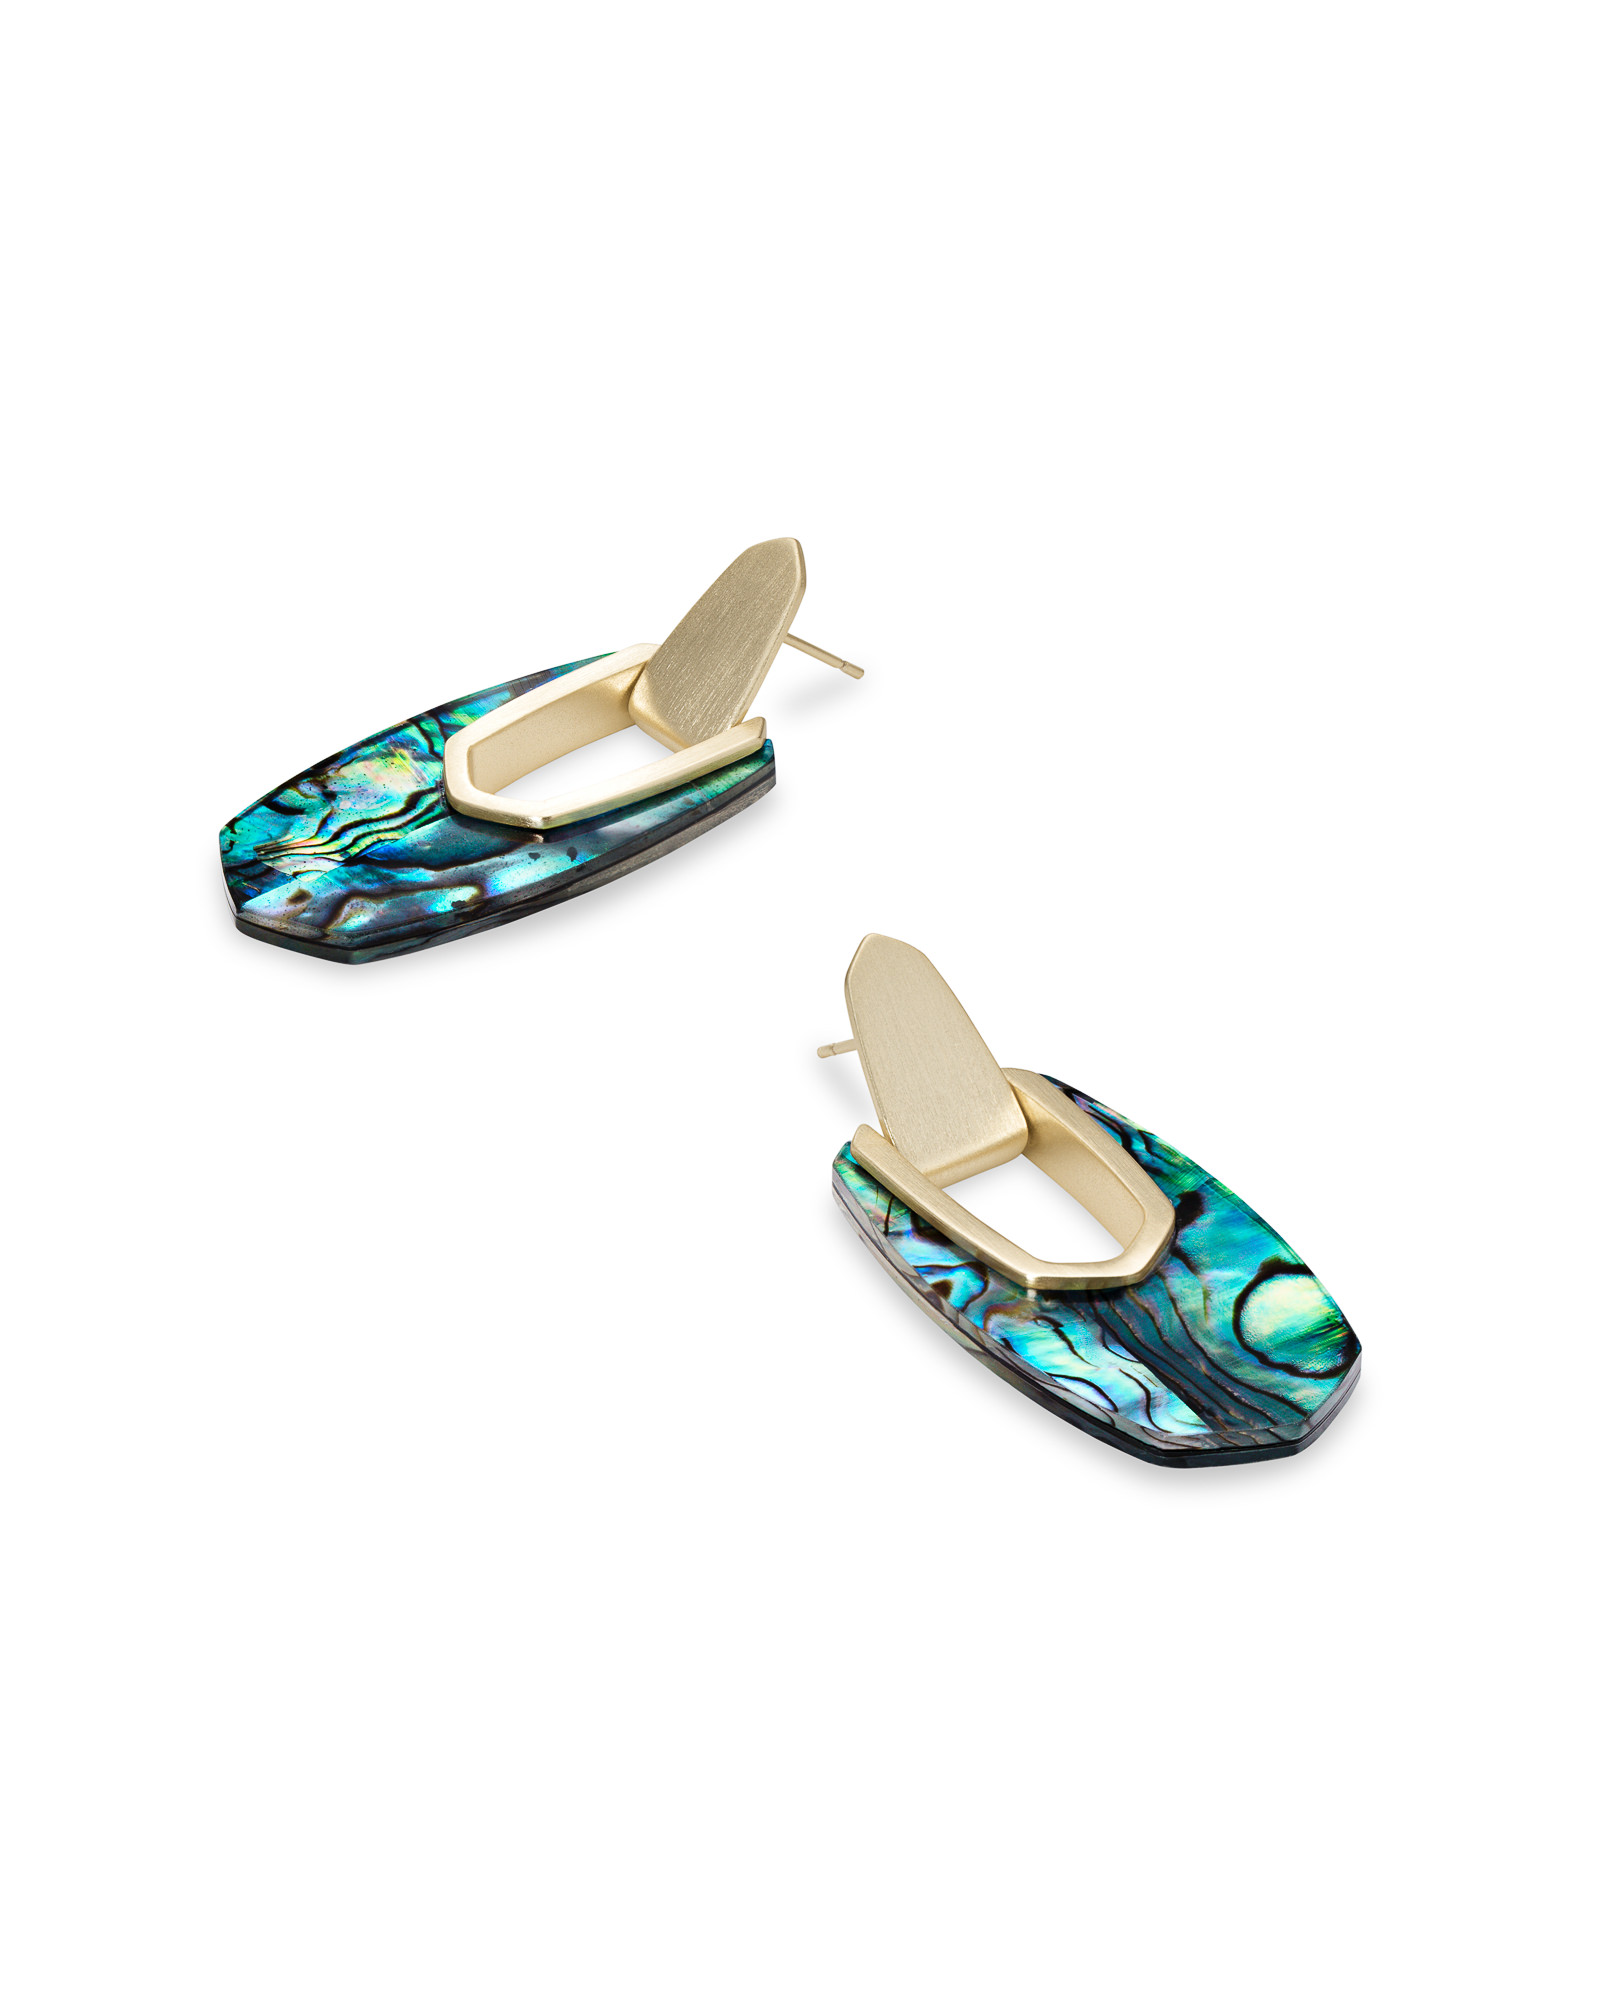 Kailyn Gold Drop Earrings in Abalone Shell